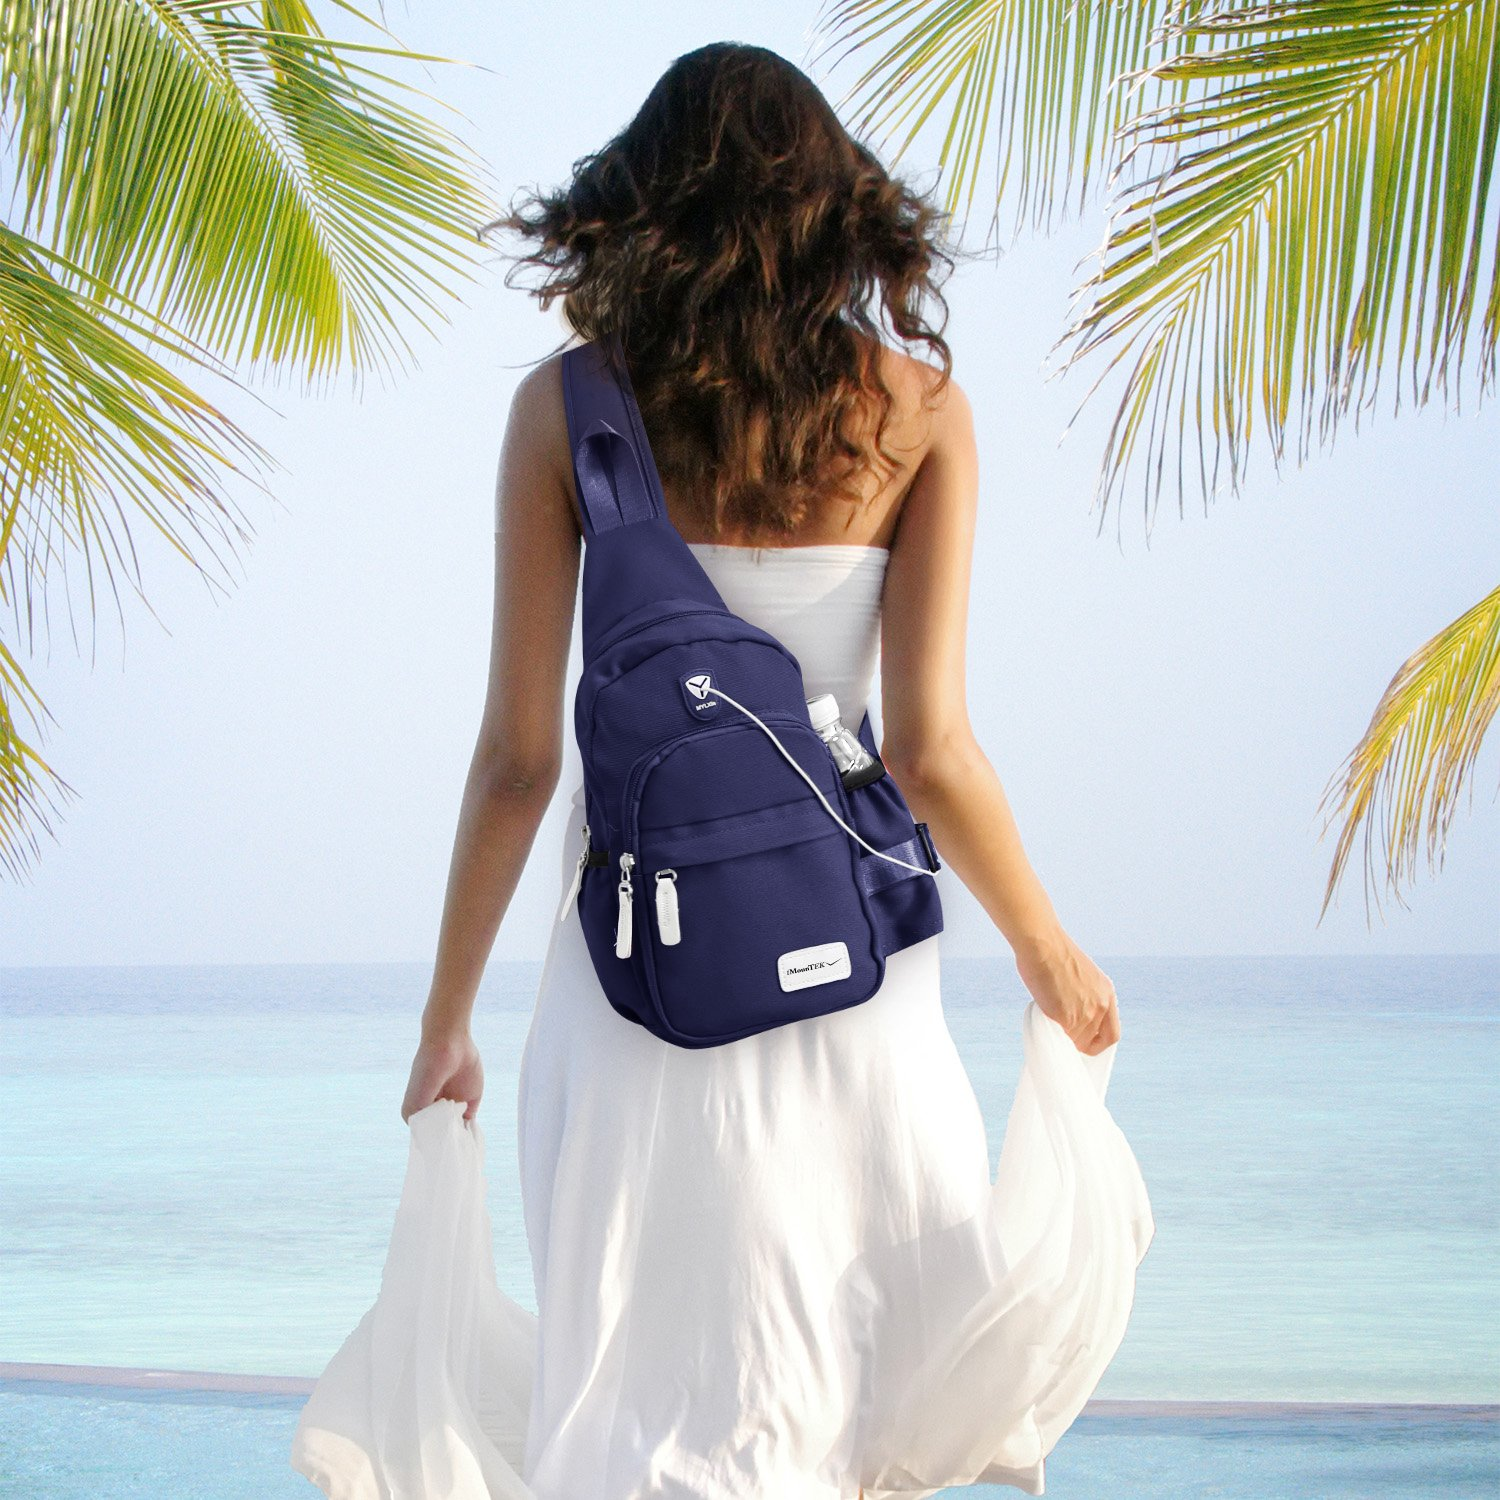 GPCT Nylon Crossbody Shoulder Chest Sling Bag Daily Travel Backpack (Blue) by GPCT (Image #7)